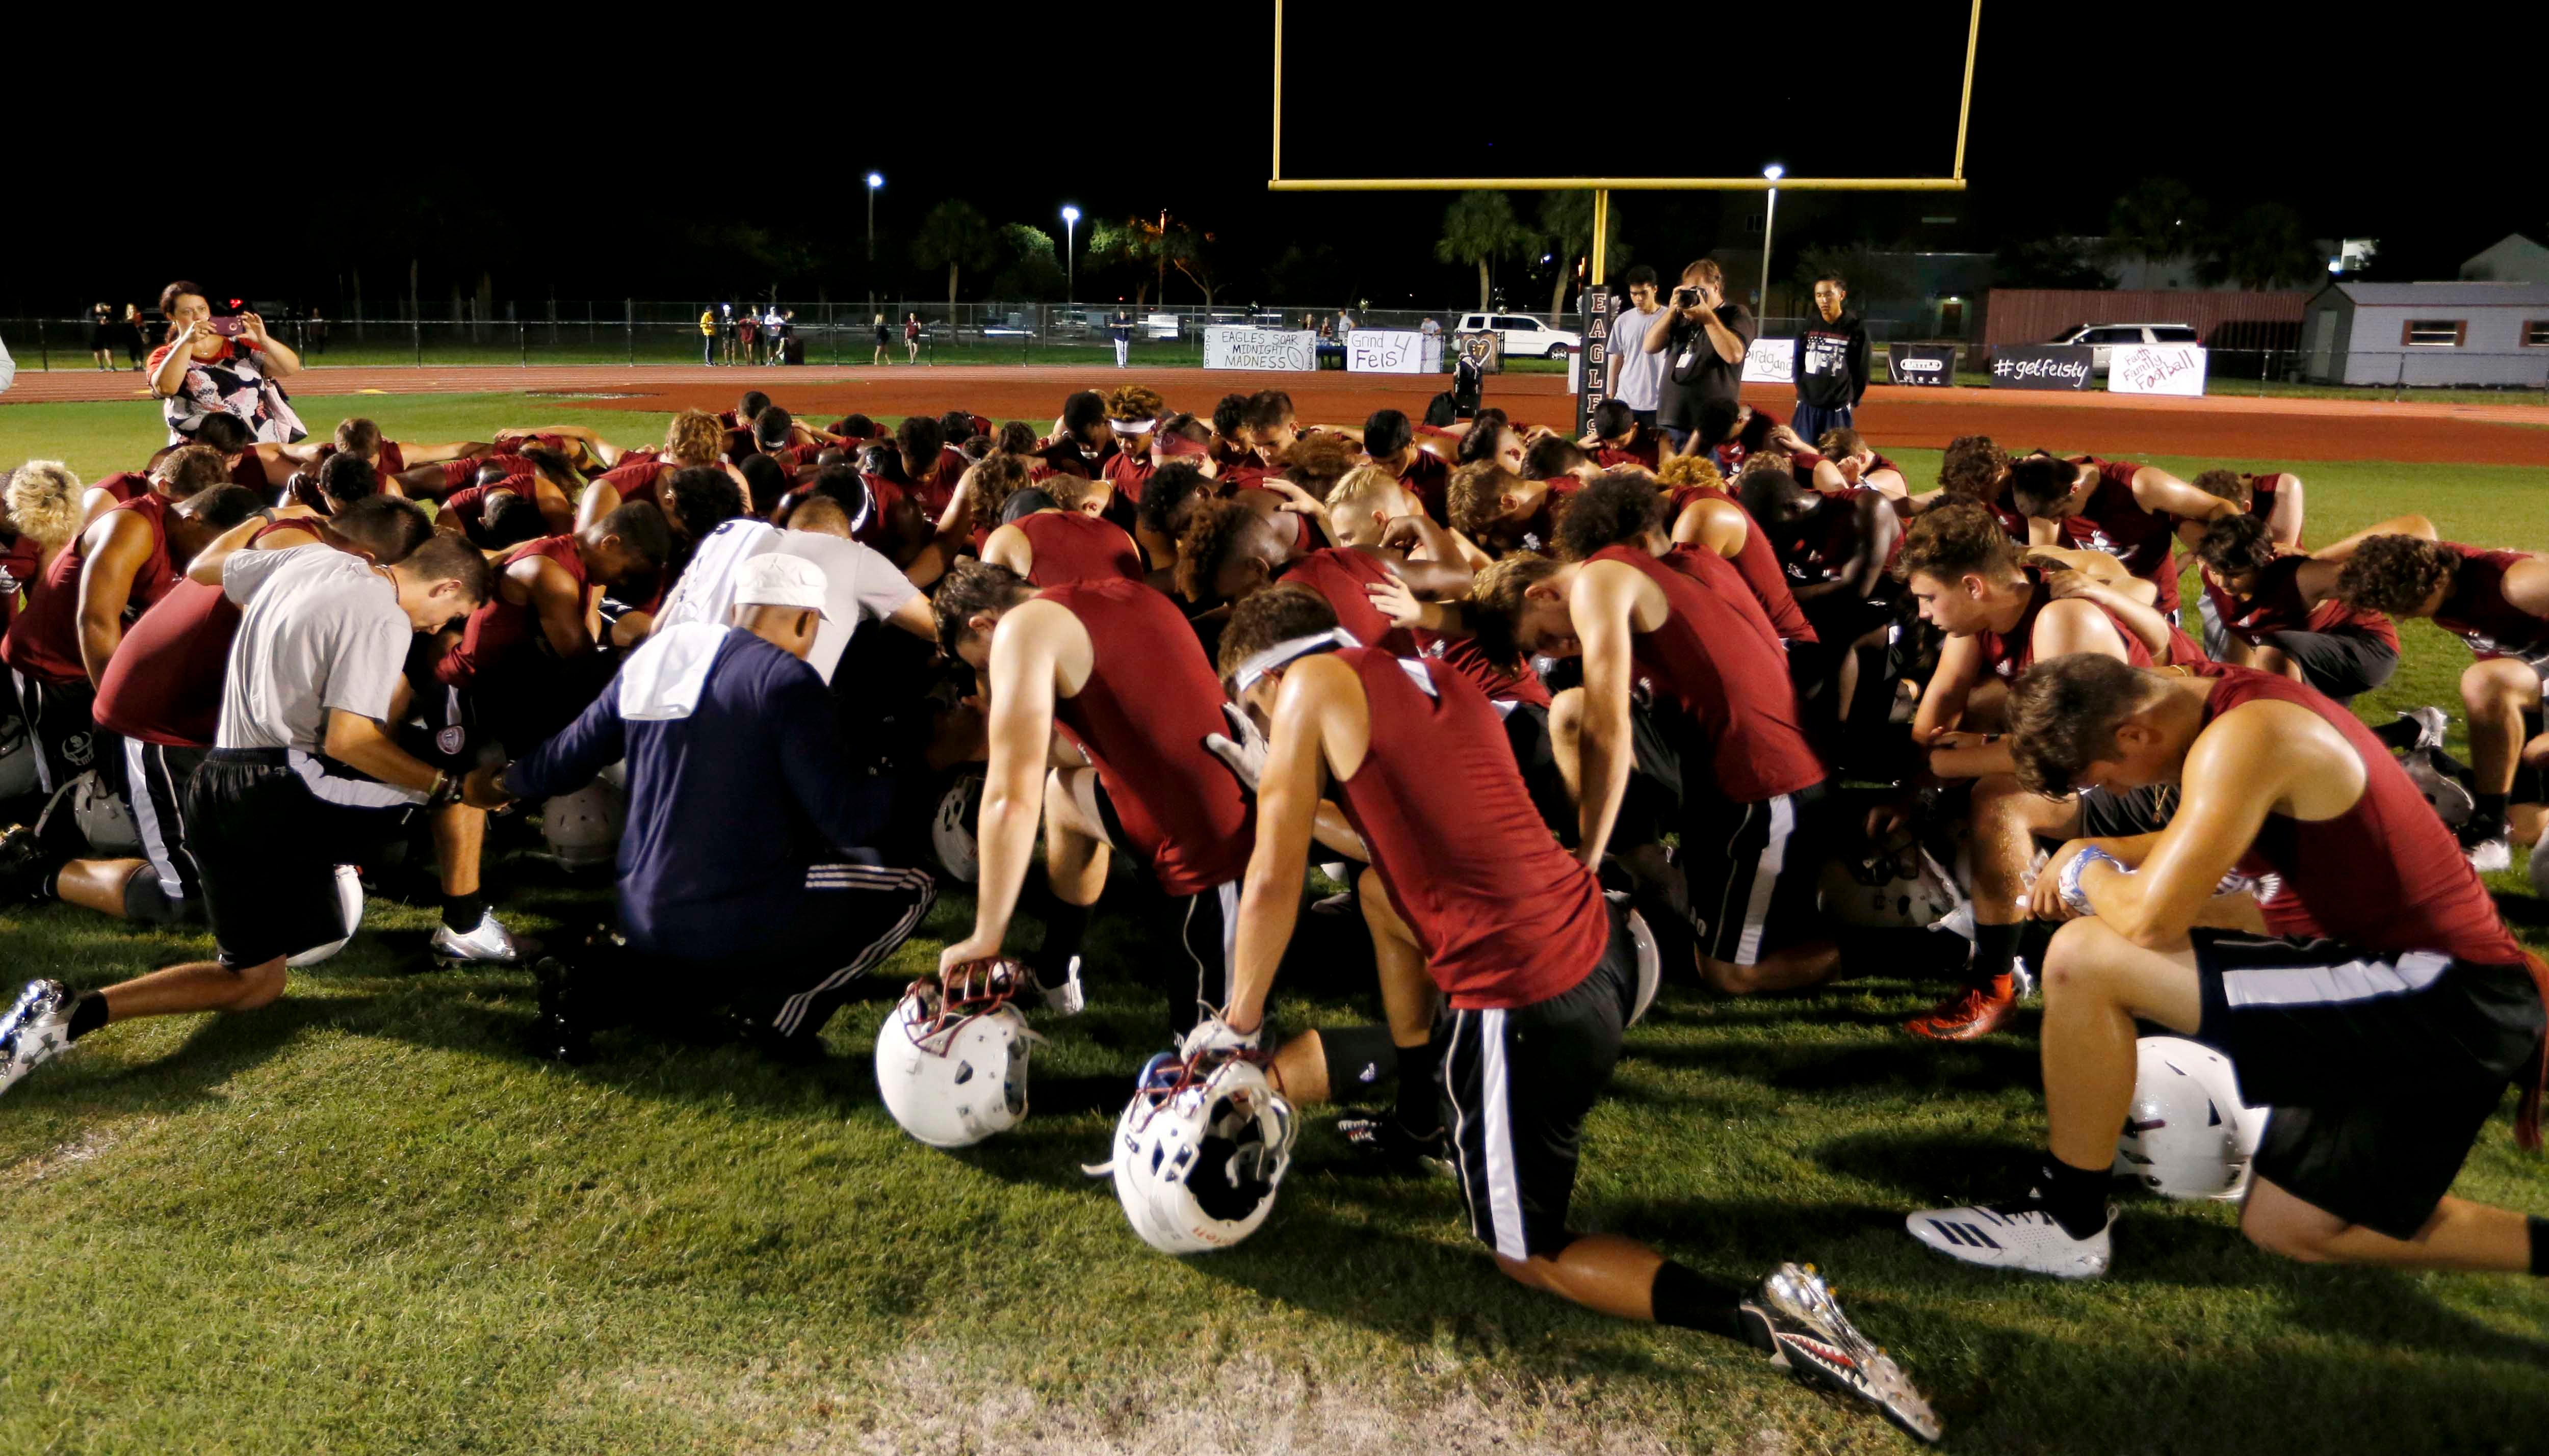 Members of the Marjory Stoneman Douglas High School football team pray together as they began practice for a new season just after midnight on Monday, July 30, 2018, in Parkland, FL. (AP Photo/Joe Skipper)